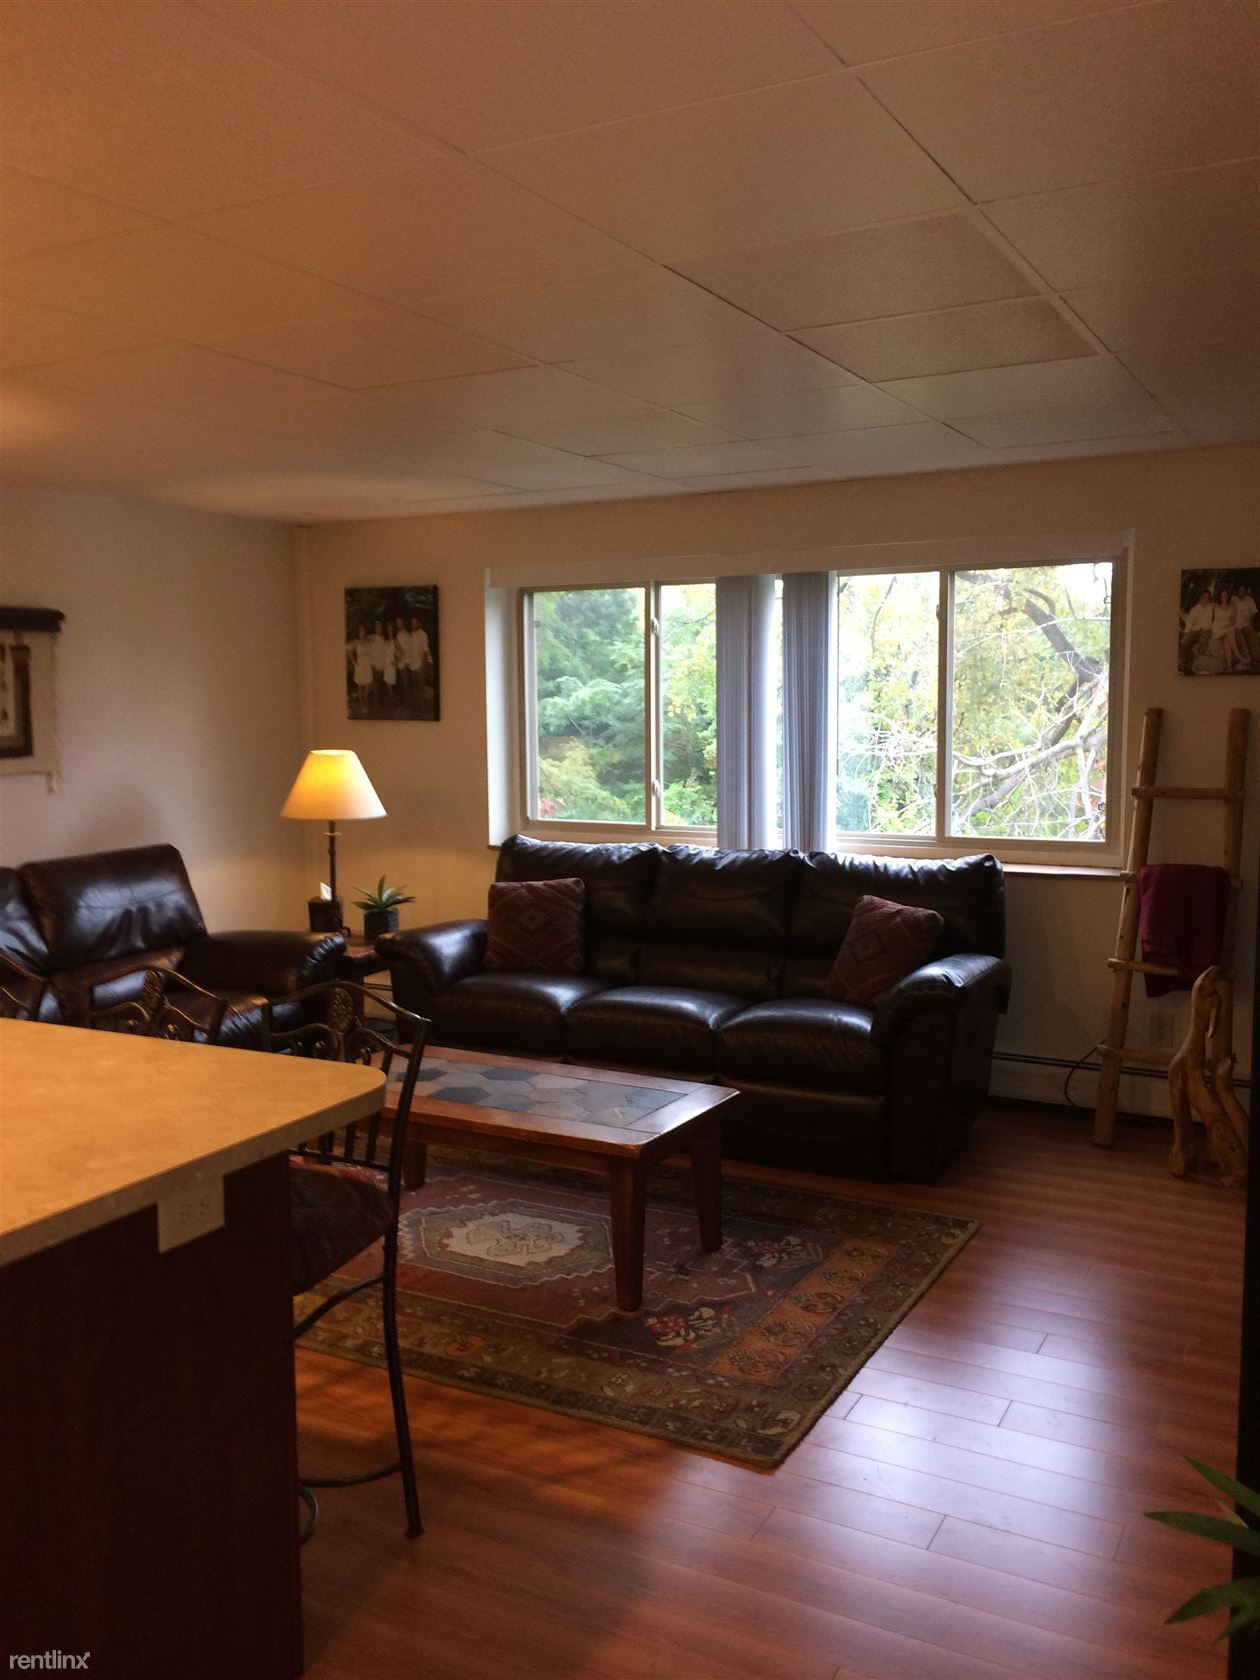 Upgraded 913 sq ft, 2 br with hardwood floors